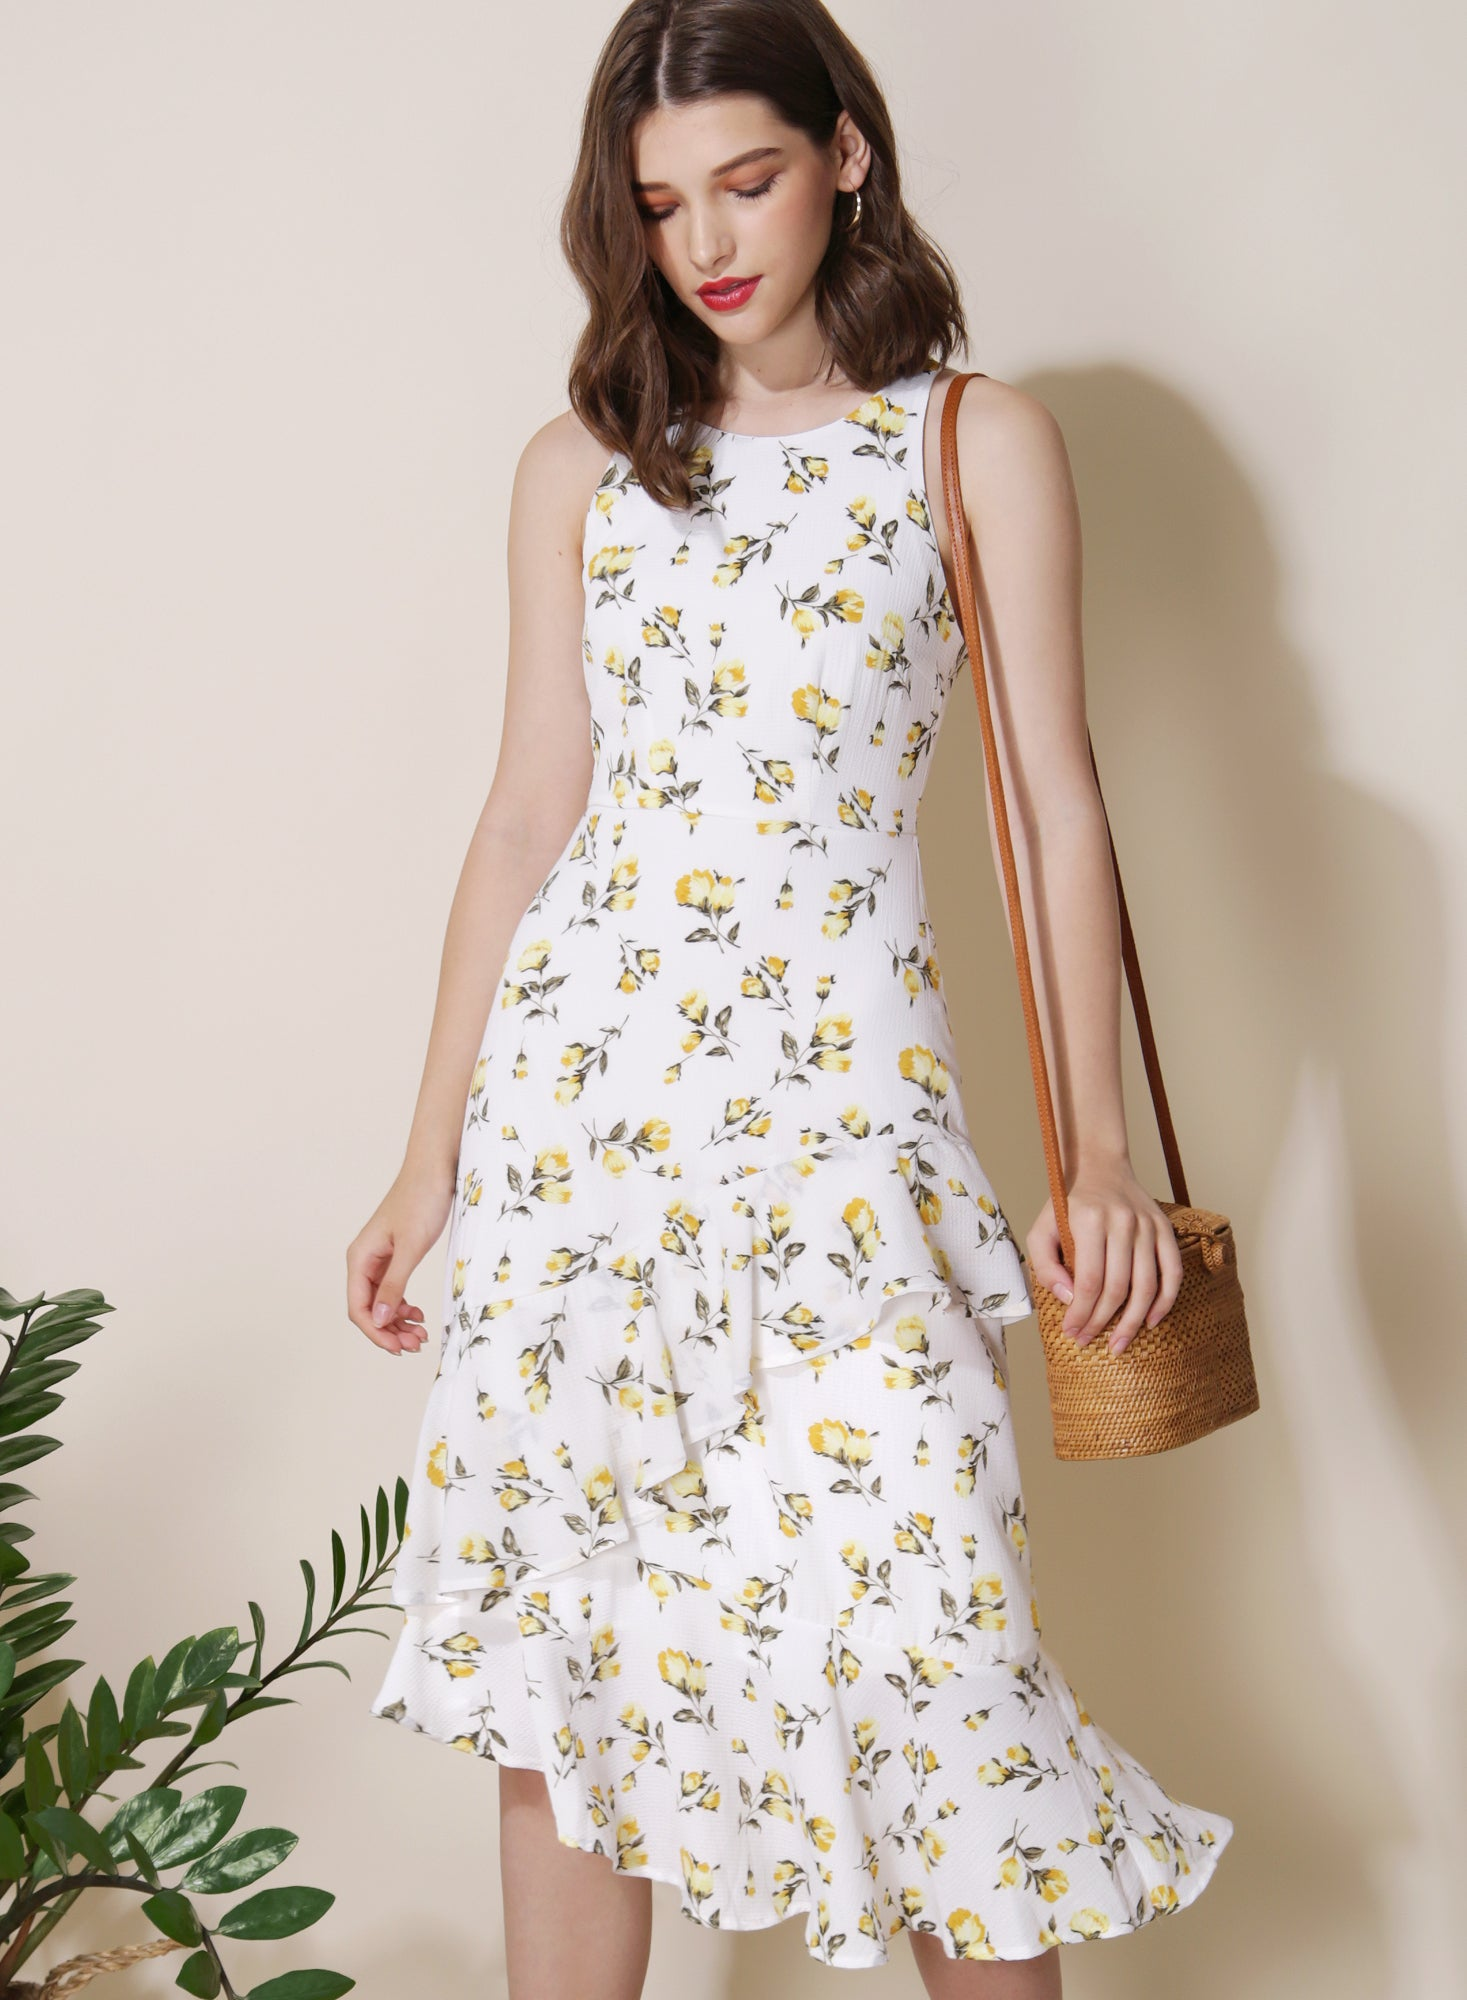 Getaway Ruffled Floral Dress (White) at $ 43.50 only sold at And Well Dressed Online Fashion Store Singapore